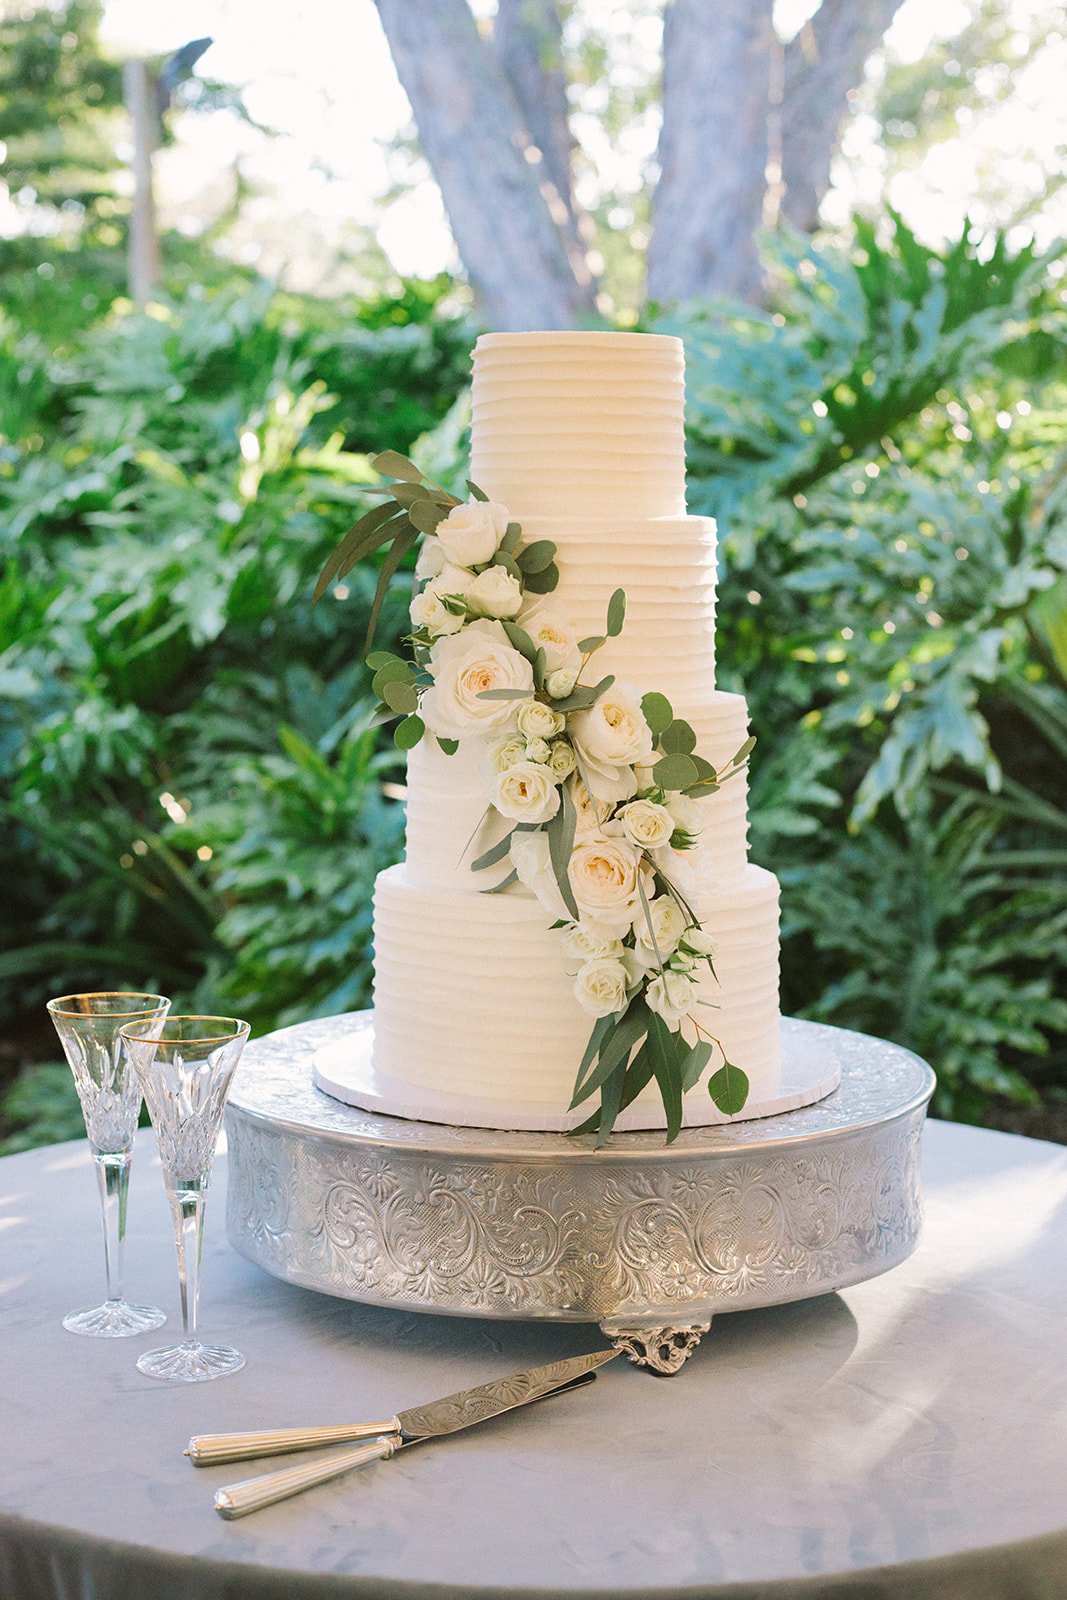 four tiered white frosted wedding cake with floral accent